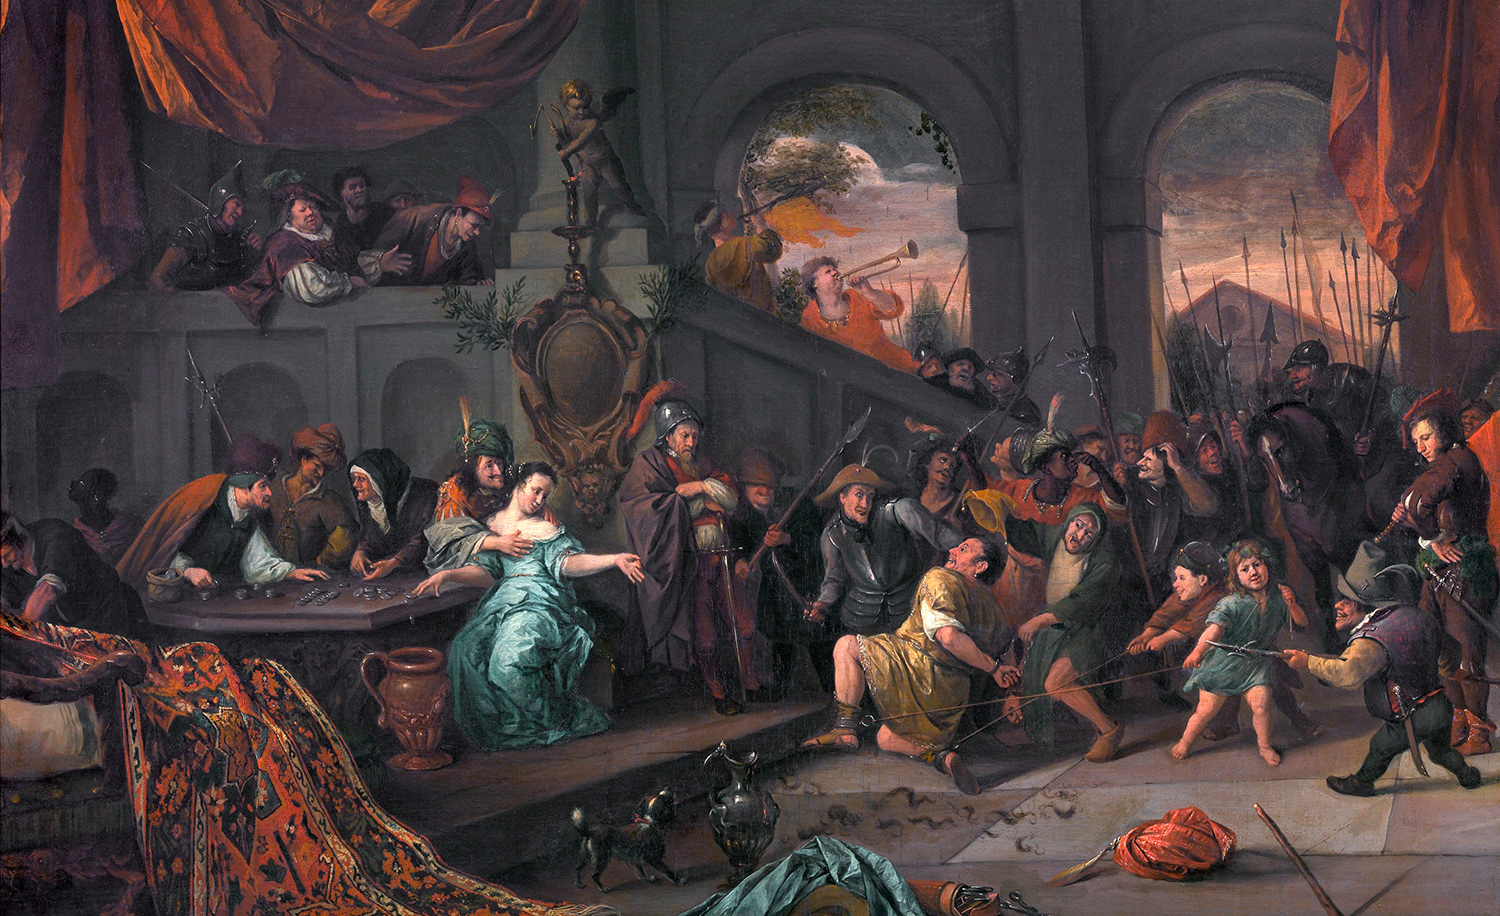 From The Mocking of Samson by Jan Steen, 1675-1676. Wikipedia.